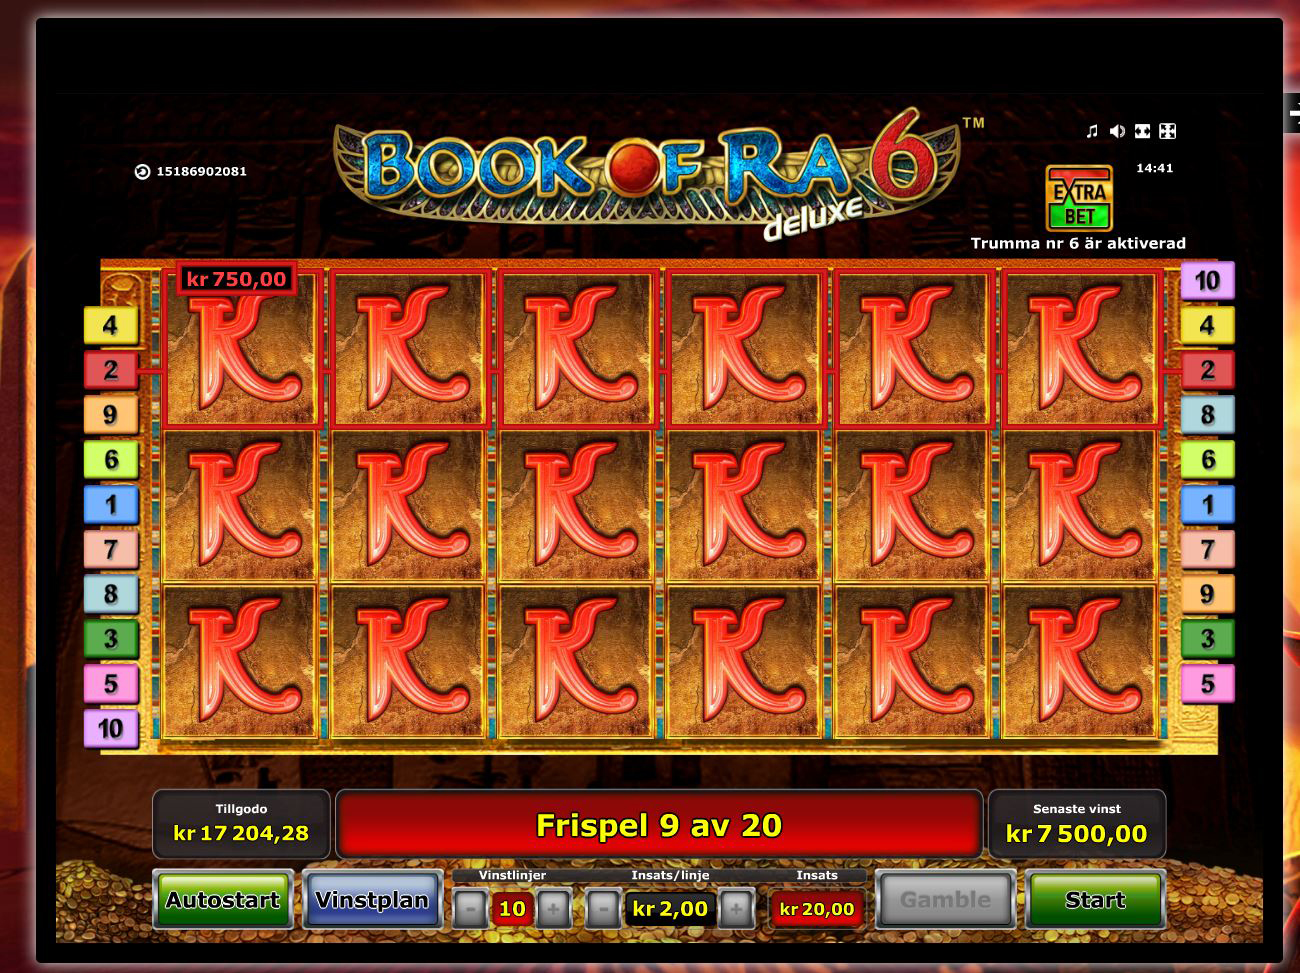 casino online book of ra live casino deutschland